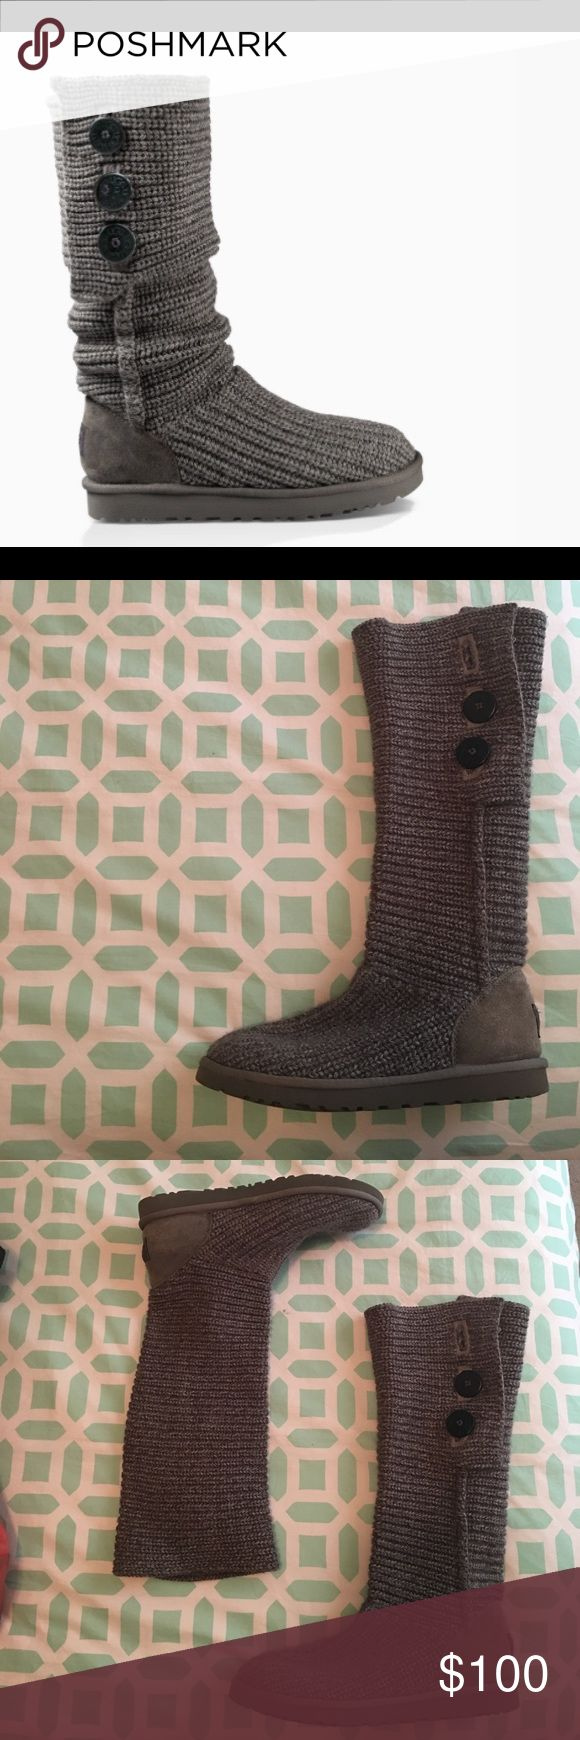 UGG Classic Cardy Crochet Boots Gray GREAT conditions, no signs of wear. Love these boots but I don't get to wear them enough because of the warm southern weather. Very warm and comfy even for just around the house UGG Shoes Winter & Rain Boots